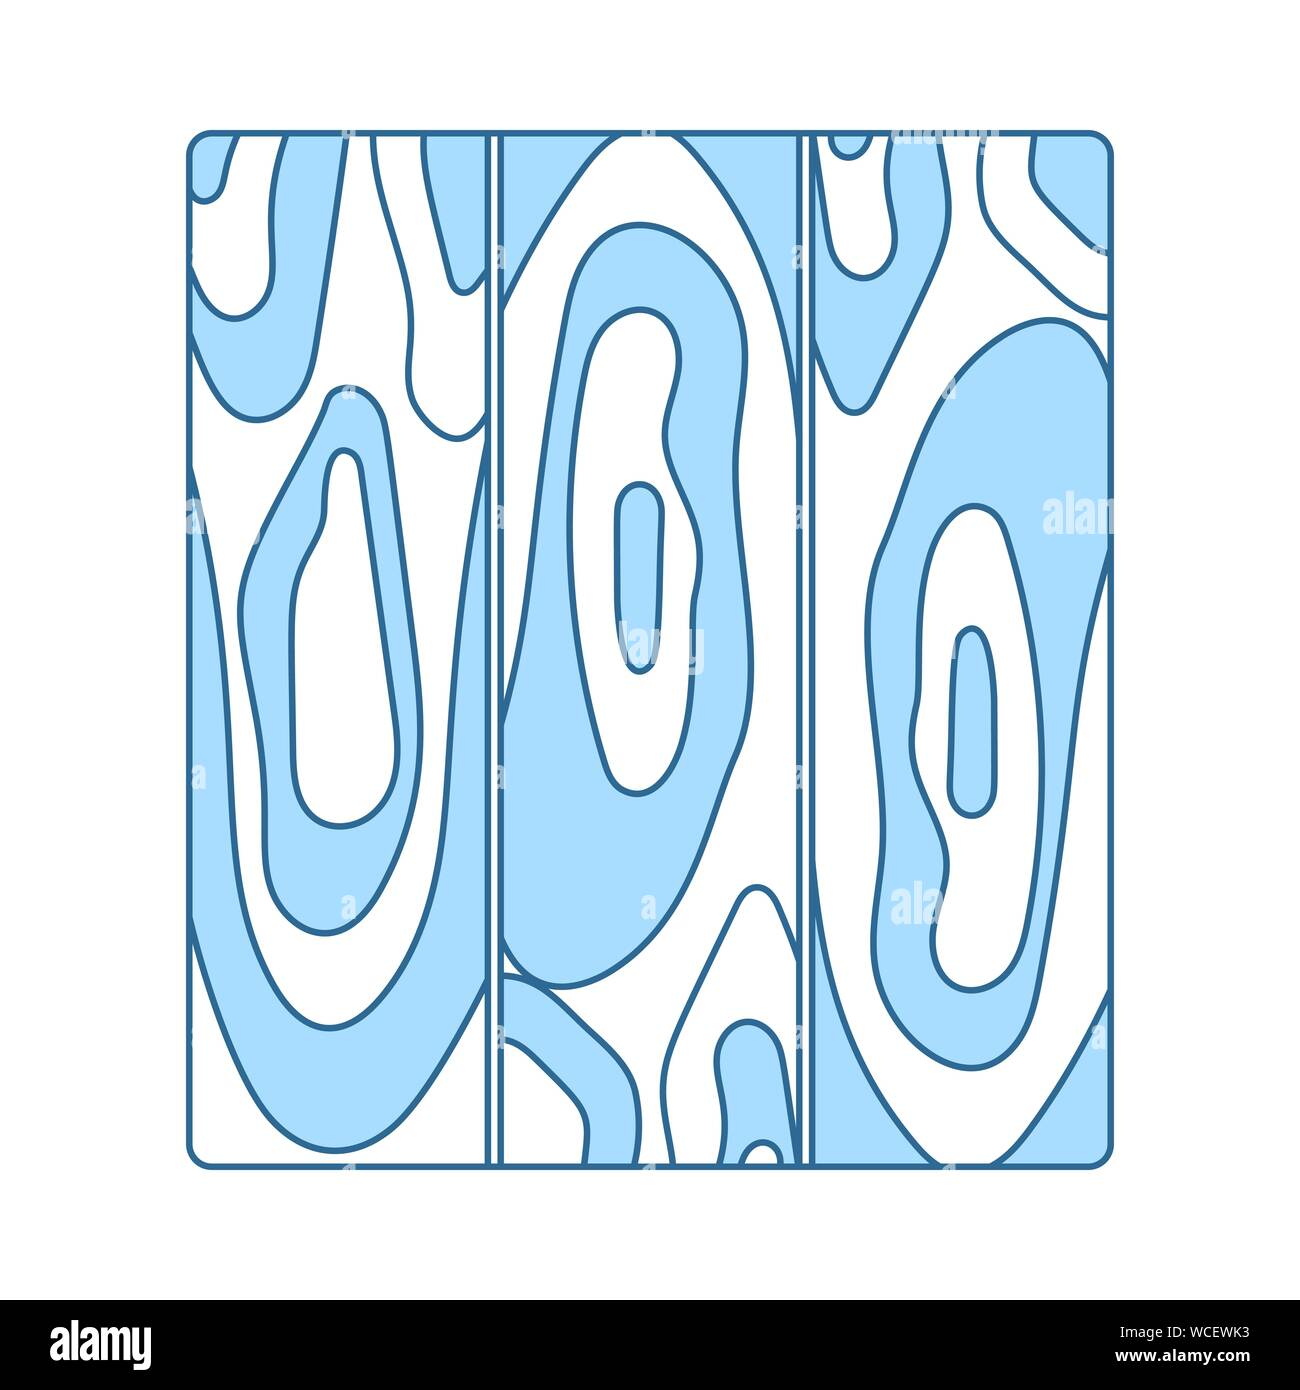 Icon Of Parquet Plank Pattern. Thin Line With Blue Fill Design. Vector Illustration. Stock Vector